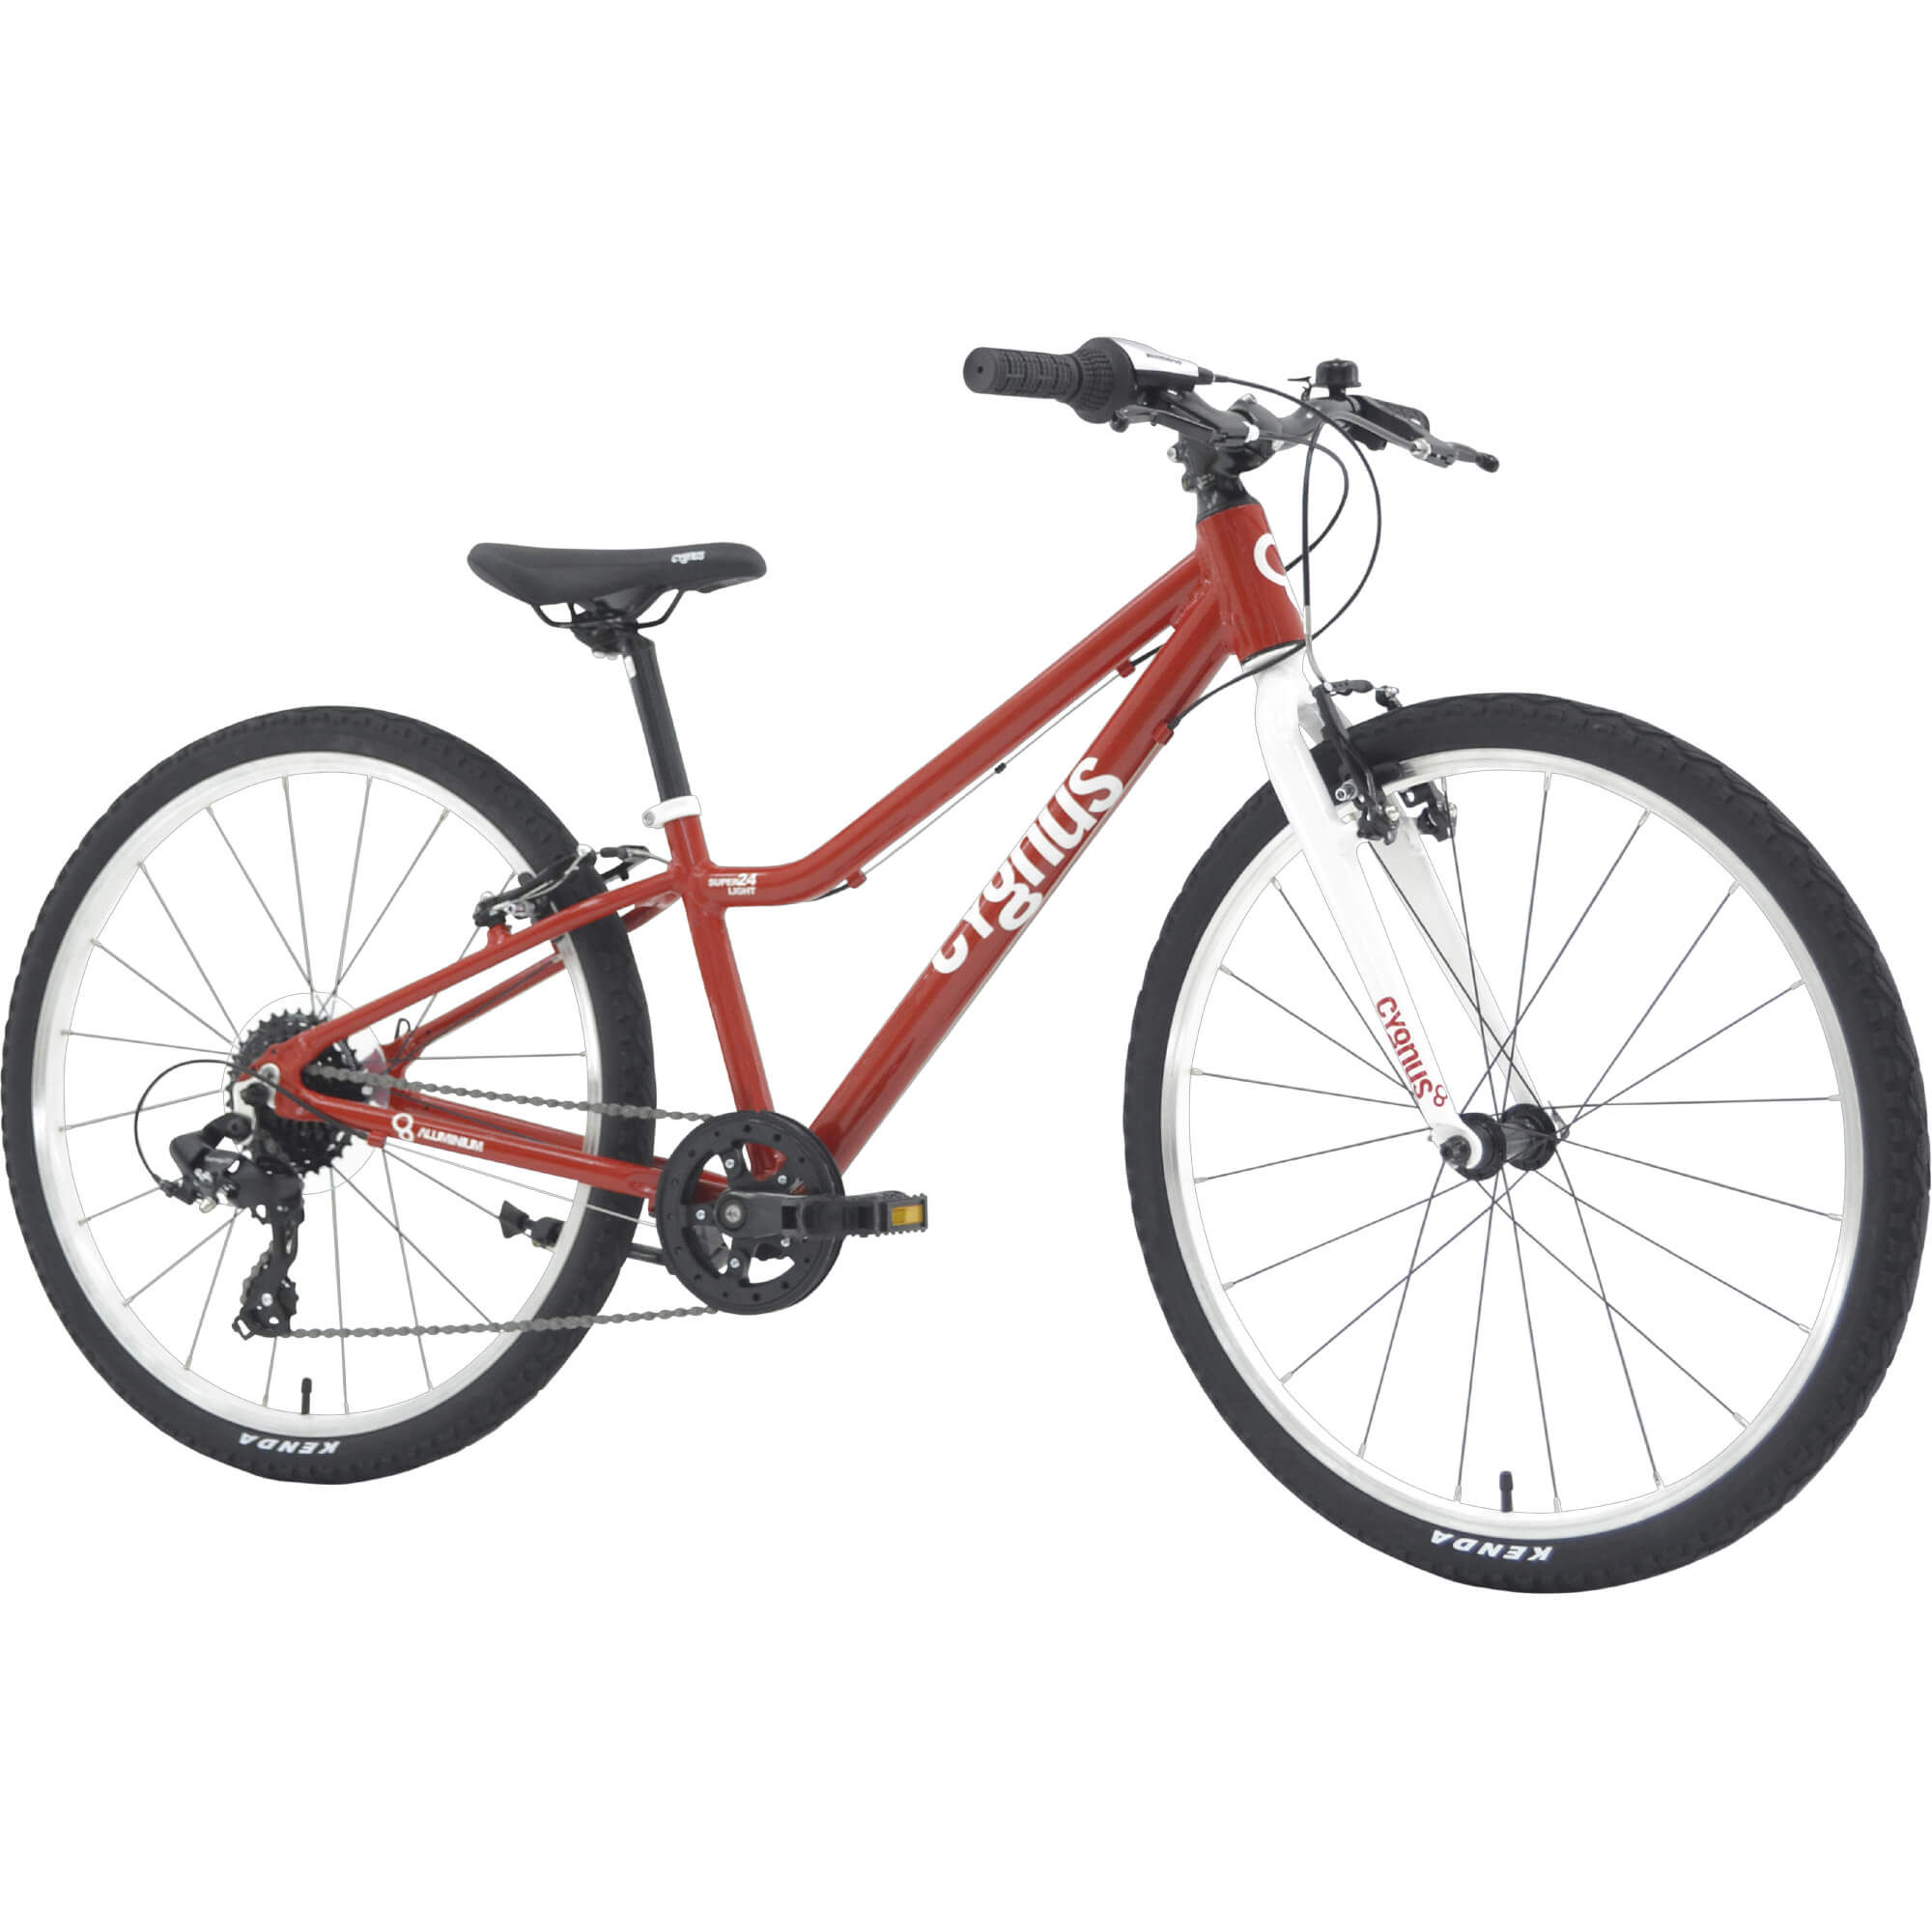 Bicicleta copii Superlight Cygnus